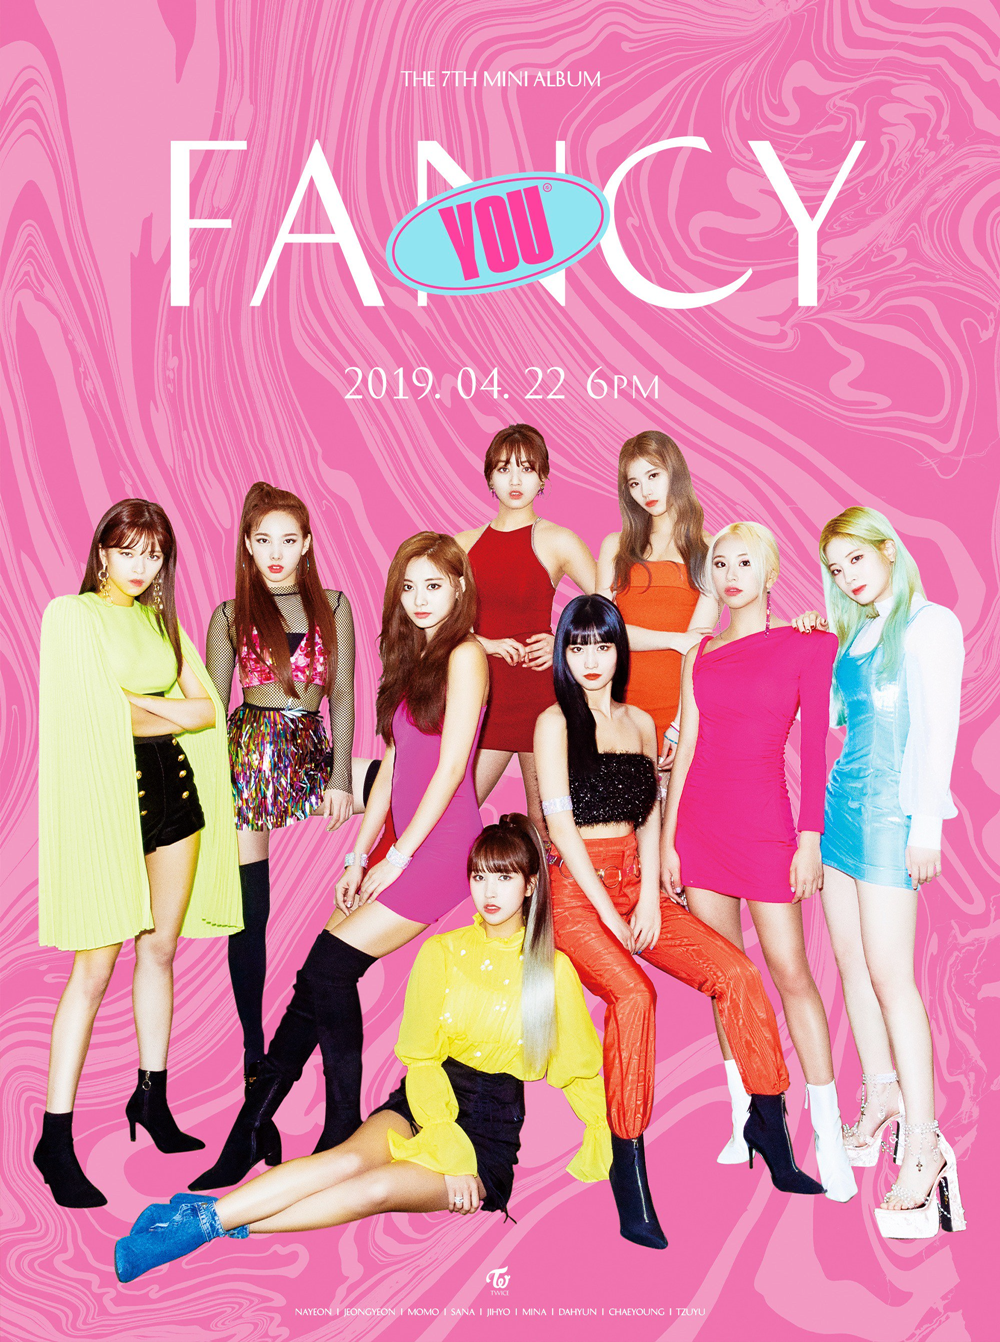 TWICE Fancy You group teaser poster 3.png